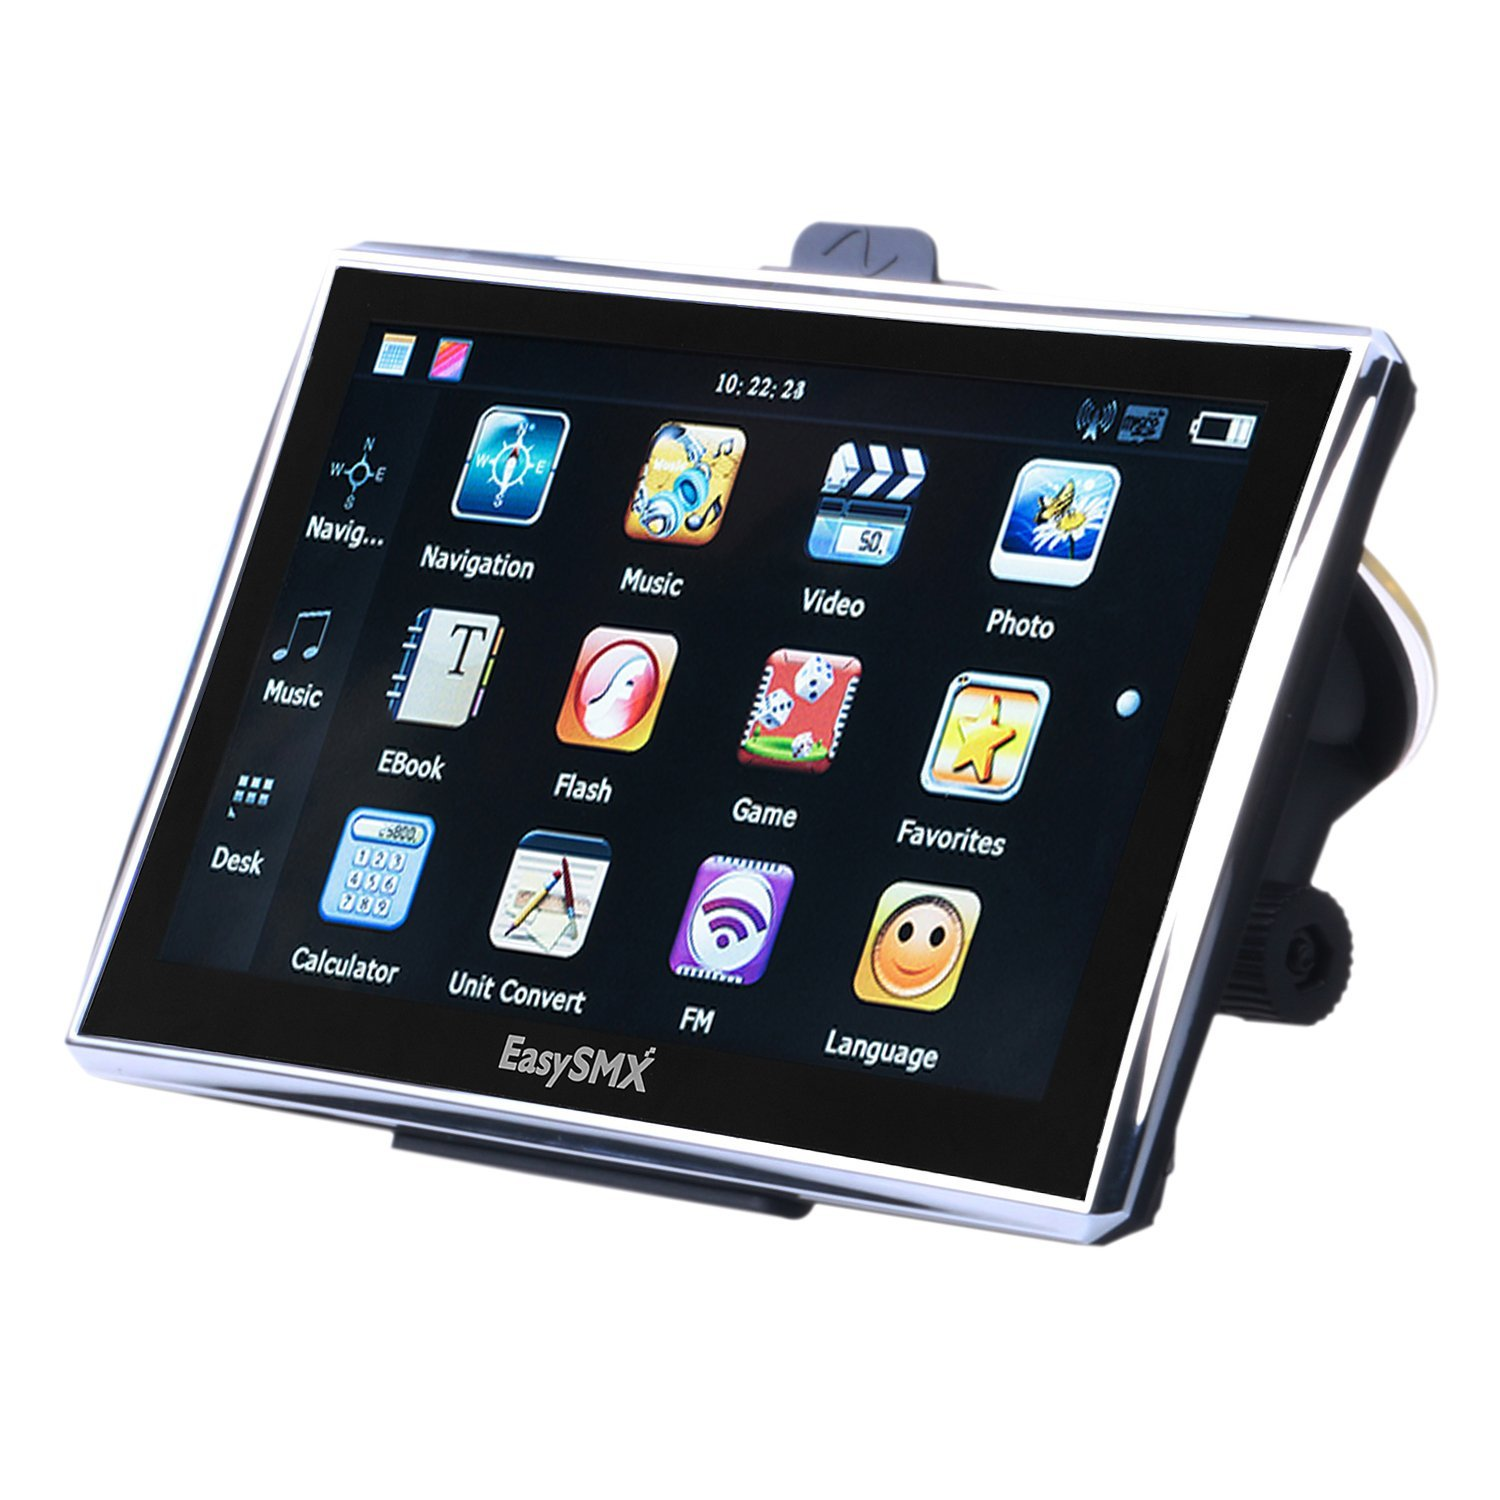 EasySMX 7 Inch GPS Navigator 128M-8GB 1500 mAh LCD Touch Screen Preloaded Free Maps Music/Movie Player Multi-language Compatible with Window XP